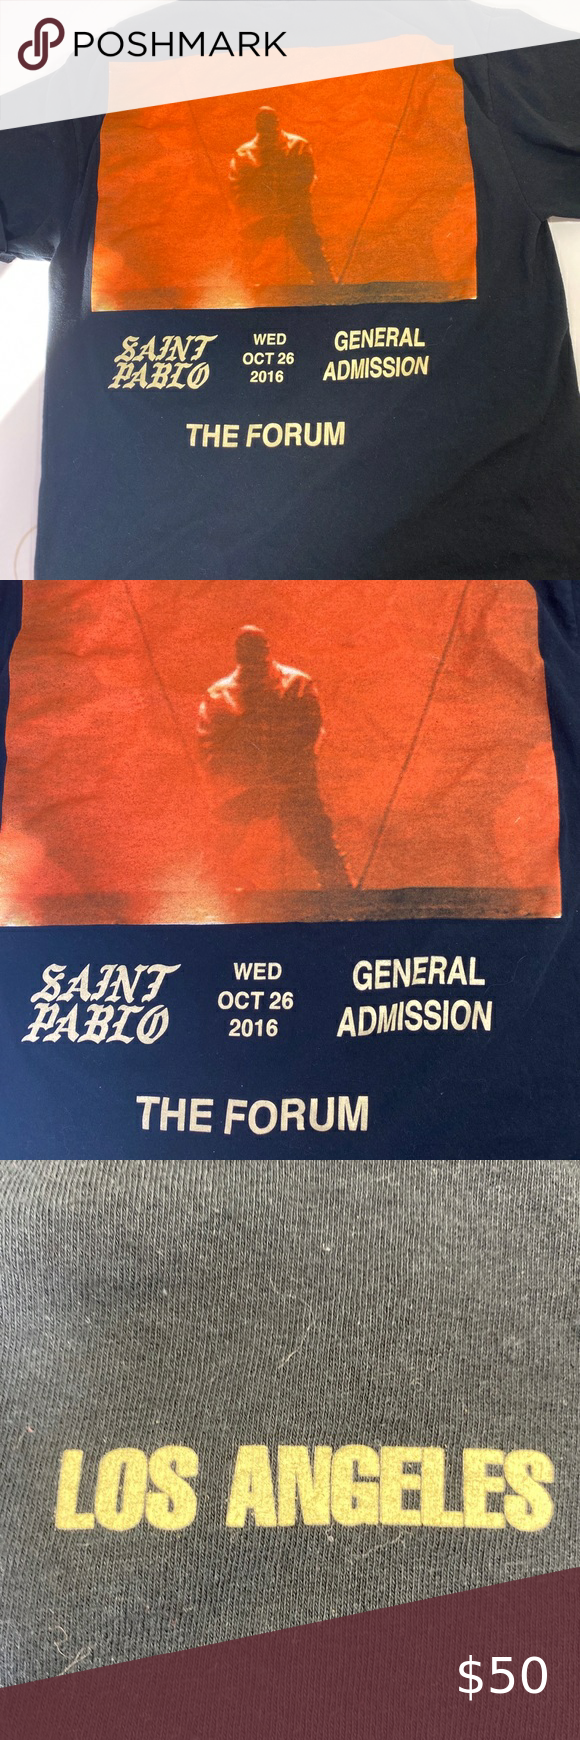 Kanye West The Forum Merch Size Large in 2020 Kanye west